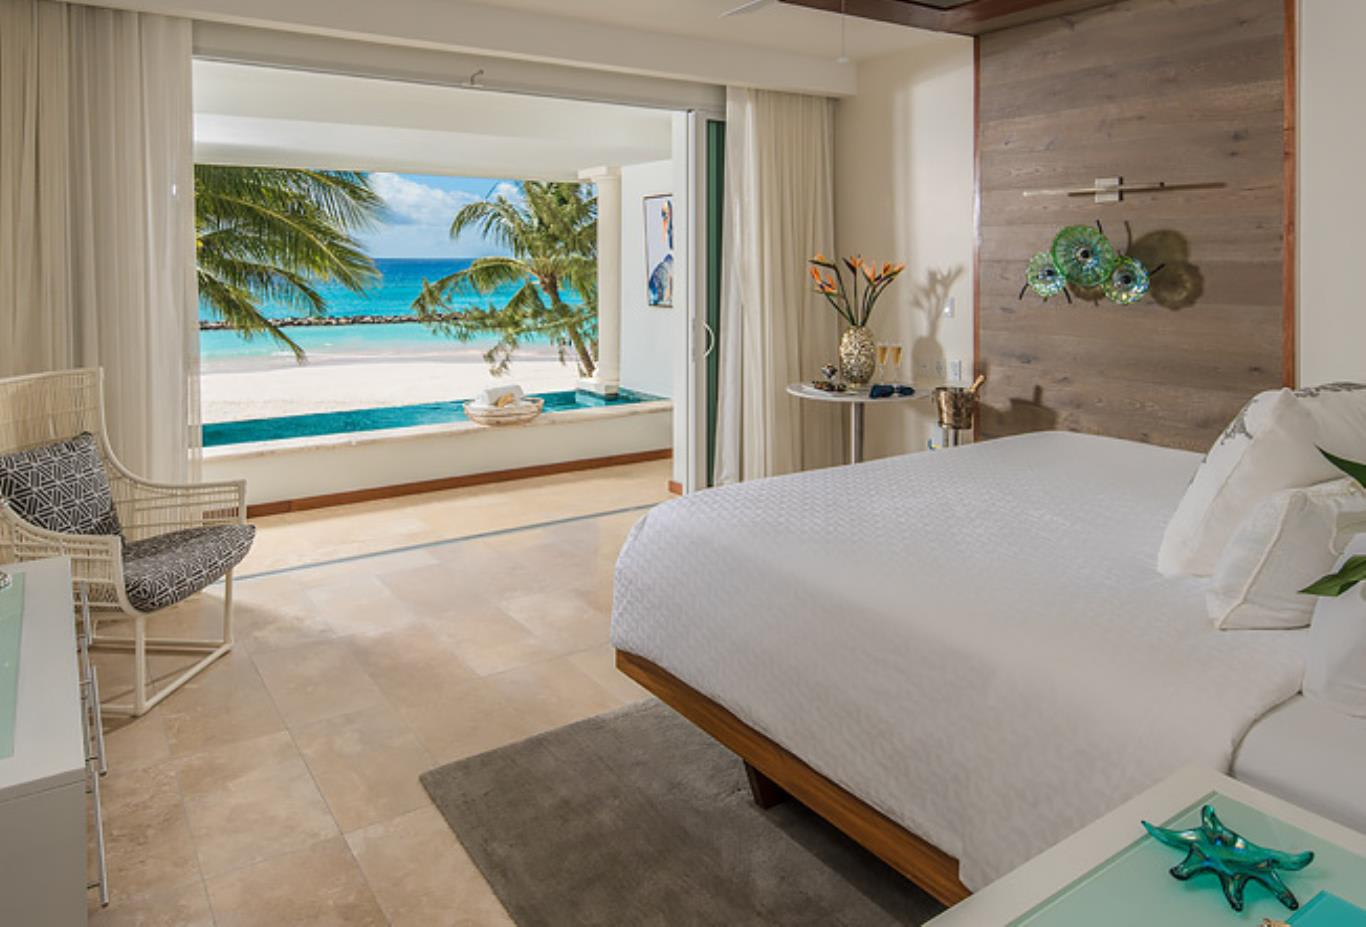 BSKY Beachfront One Bedroom Skypool Butler Suite with Balcony Tranquillity Soaking Tub pool